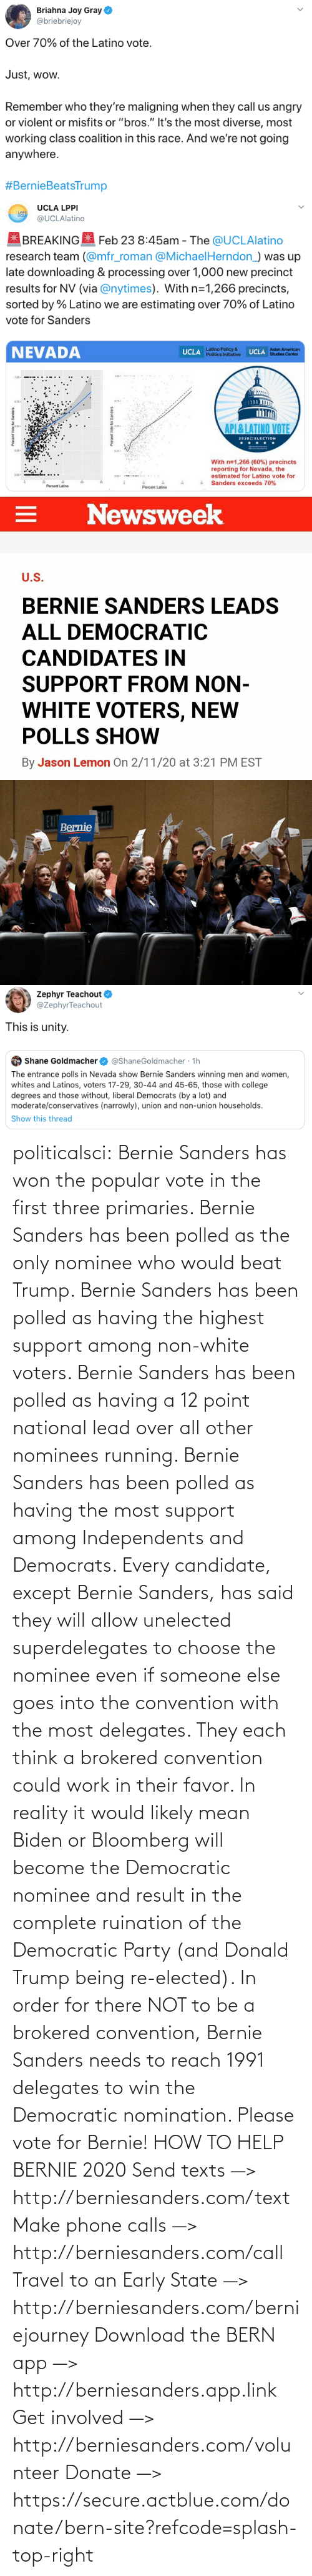 Donald Trump: politicalsci: Bernie Sanders has won the popular vote in the first three primaries. Bernie Sanders has  been polled as the only nominee who would beat Trump. Bernie Sanders  has been polled as having the highest support among non-white voters.  Bernie Sanders has been polled as having a 12 point national lead over  all other nominees running. Bernie Sanders has been polled as having the most support among Independents and Democrats.  Every candidate, except Bernie Sanders, has said they will allow  unelected superdelegates to choose the nominee even if someone else goes  into the convention with the most delegates. They each think a brokered  convention could work in their favor. In  reality it would likely mean Biden or Bloomberg will become the  Democratic nominee and result in the complete ruination of the  Democratic Party (and Donald Trump being re-elected). In order for there  NOT to be a brokered  convention, Bernie Sanders needs to reach 1991 delegates to win the  Democratic  nomination. Please vote for Bernie!  HOW TO HELP BERNIE 2020 Send texts —> http://berniesanders.com/text  Make phone calls —> http://berniesanders.com/call  Travel to an Early State —> http://berniesanders.com/berniejourney  Download the BERN app —> http://berniesanders.app.link  Get involved —> http://berniesanders.com/volunteer Donate —> https://secure.actblue.com/donate/bern-site?refcode=splash-top-right